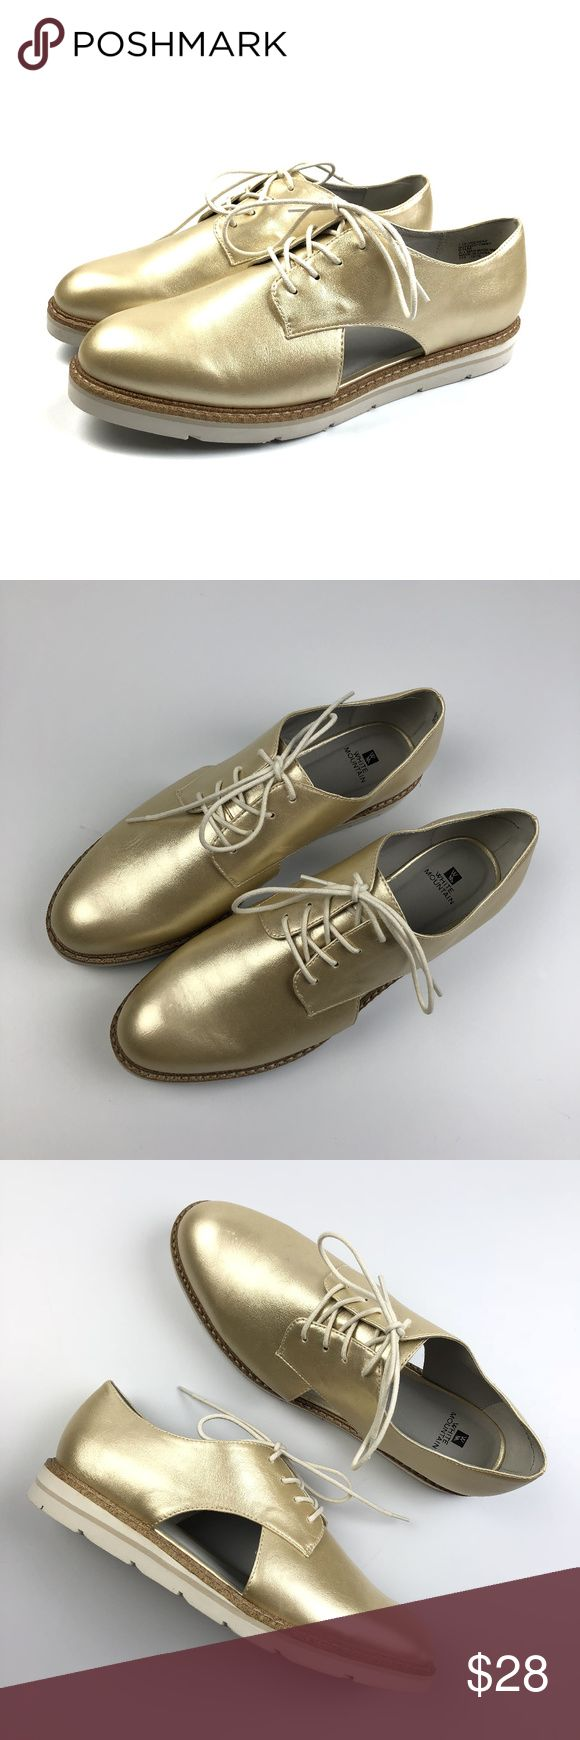 """White Mountain Timmy Cutout Gold Oxfords NEW New without box. Some light scuffs, marks from storage. White Mountain Timmy metallic gold cutout lace up oxfords. White and cork outsole. Synthetic. Size 9 1/2 Apx: 1"""" heel, 1/2"""" platform. White Mountain Shoes Flats & Loafers"""